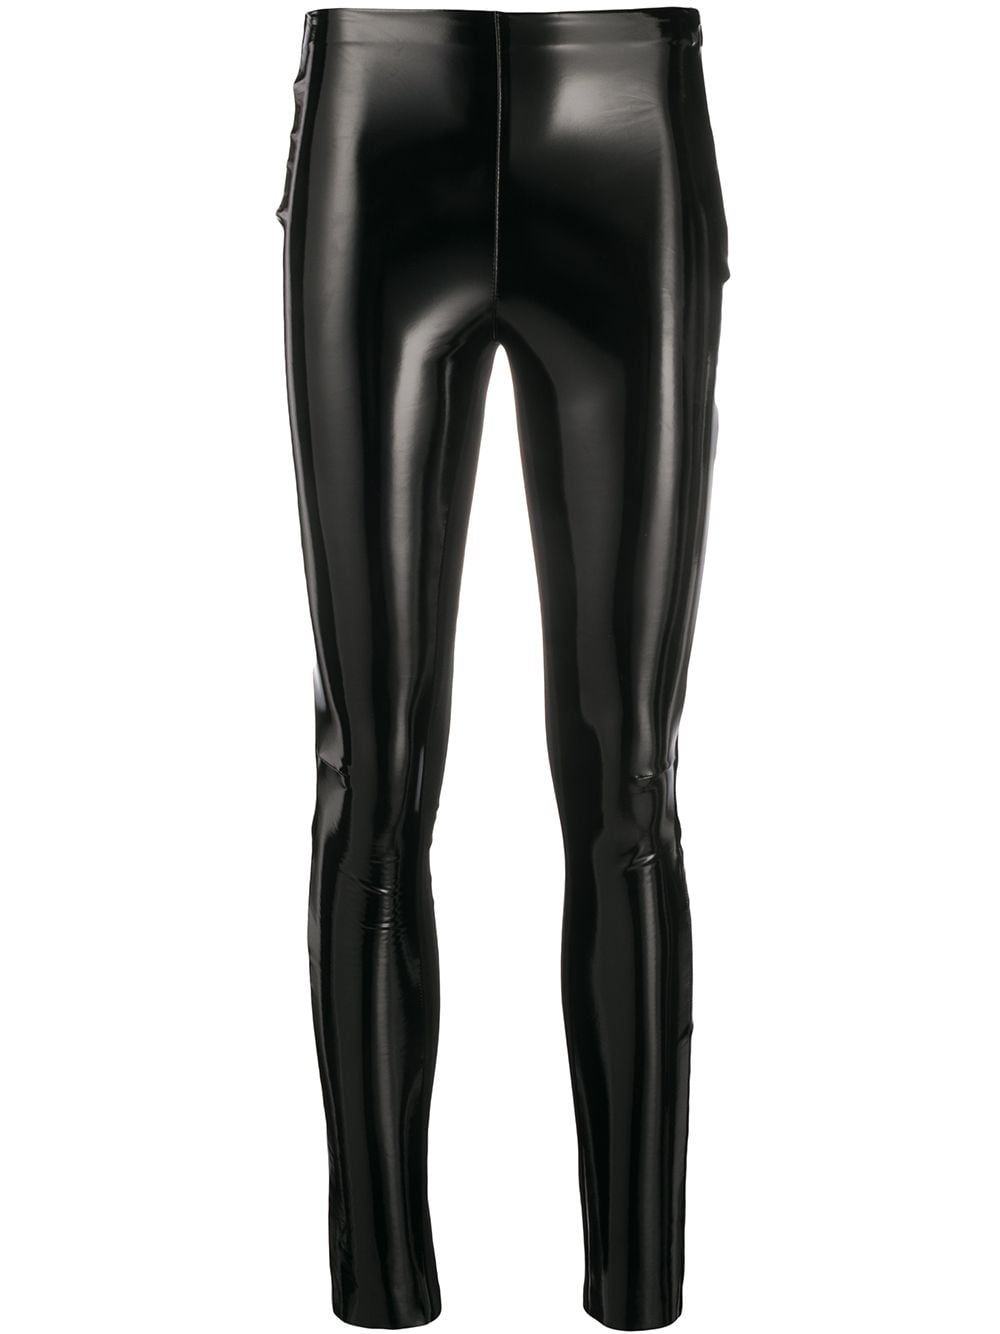 Black STUDIO KL patent slim leggings from Karl Lagerfeld featuring a side zip fastening and a slim fit.